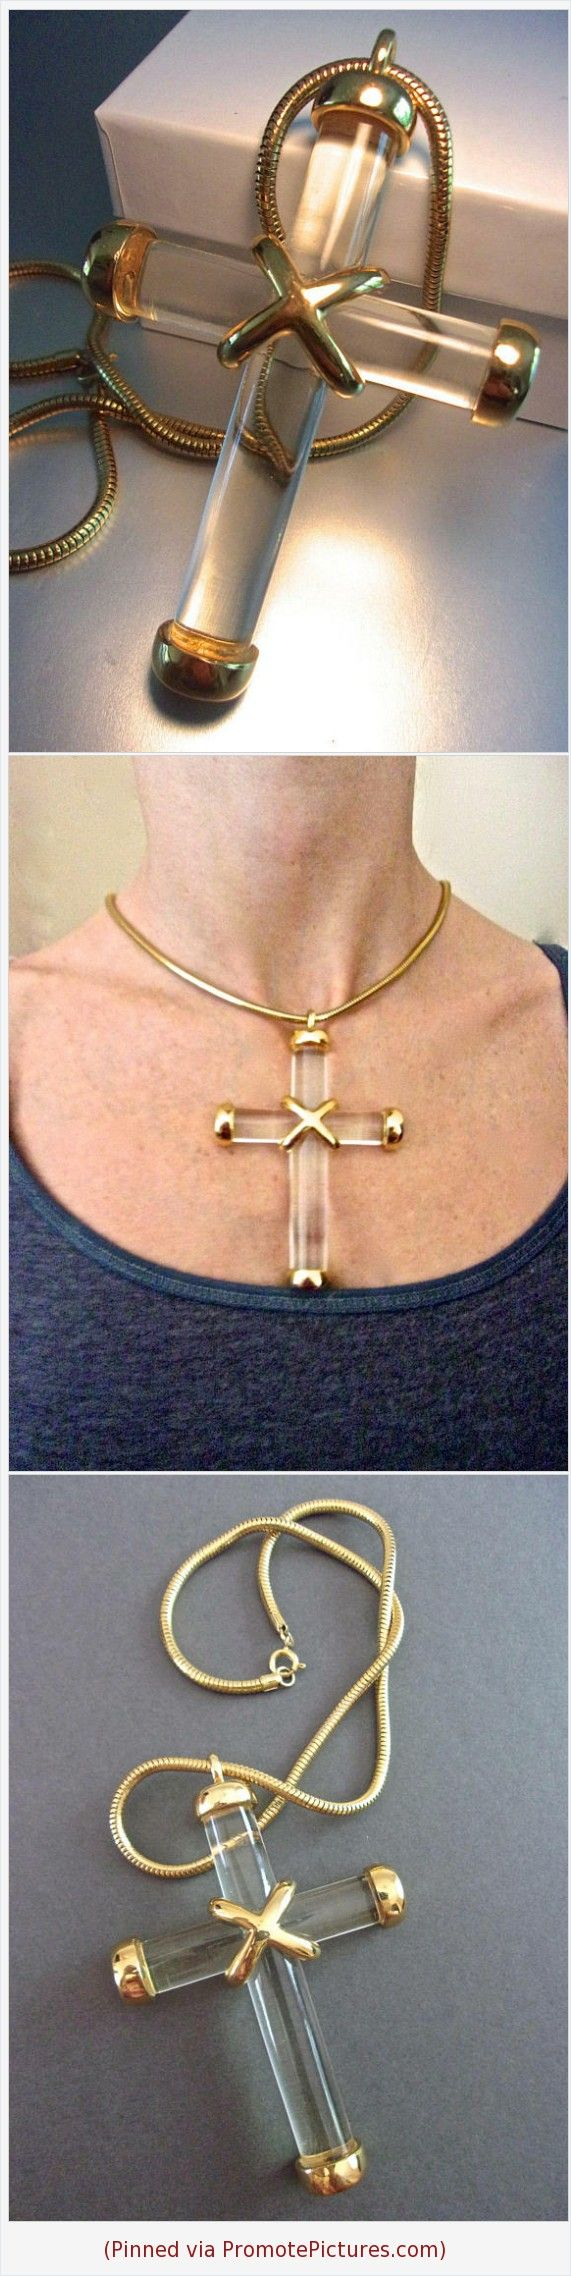 Clear Lucite Large Cross Pendant Necklace, Gold Trim, Snake Chain, Vintage #cross #necklace #pendant #snakechain #Lucite #clear #large #runway #goldtrim #vintage #modernist https://www.etsy.com/RenaissanceFair/listing/597901671/clear-lucite-large-cross-pendant?ref=listings_manager_grid  (Pinned using https://PromotePictures.com)